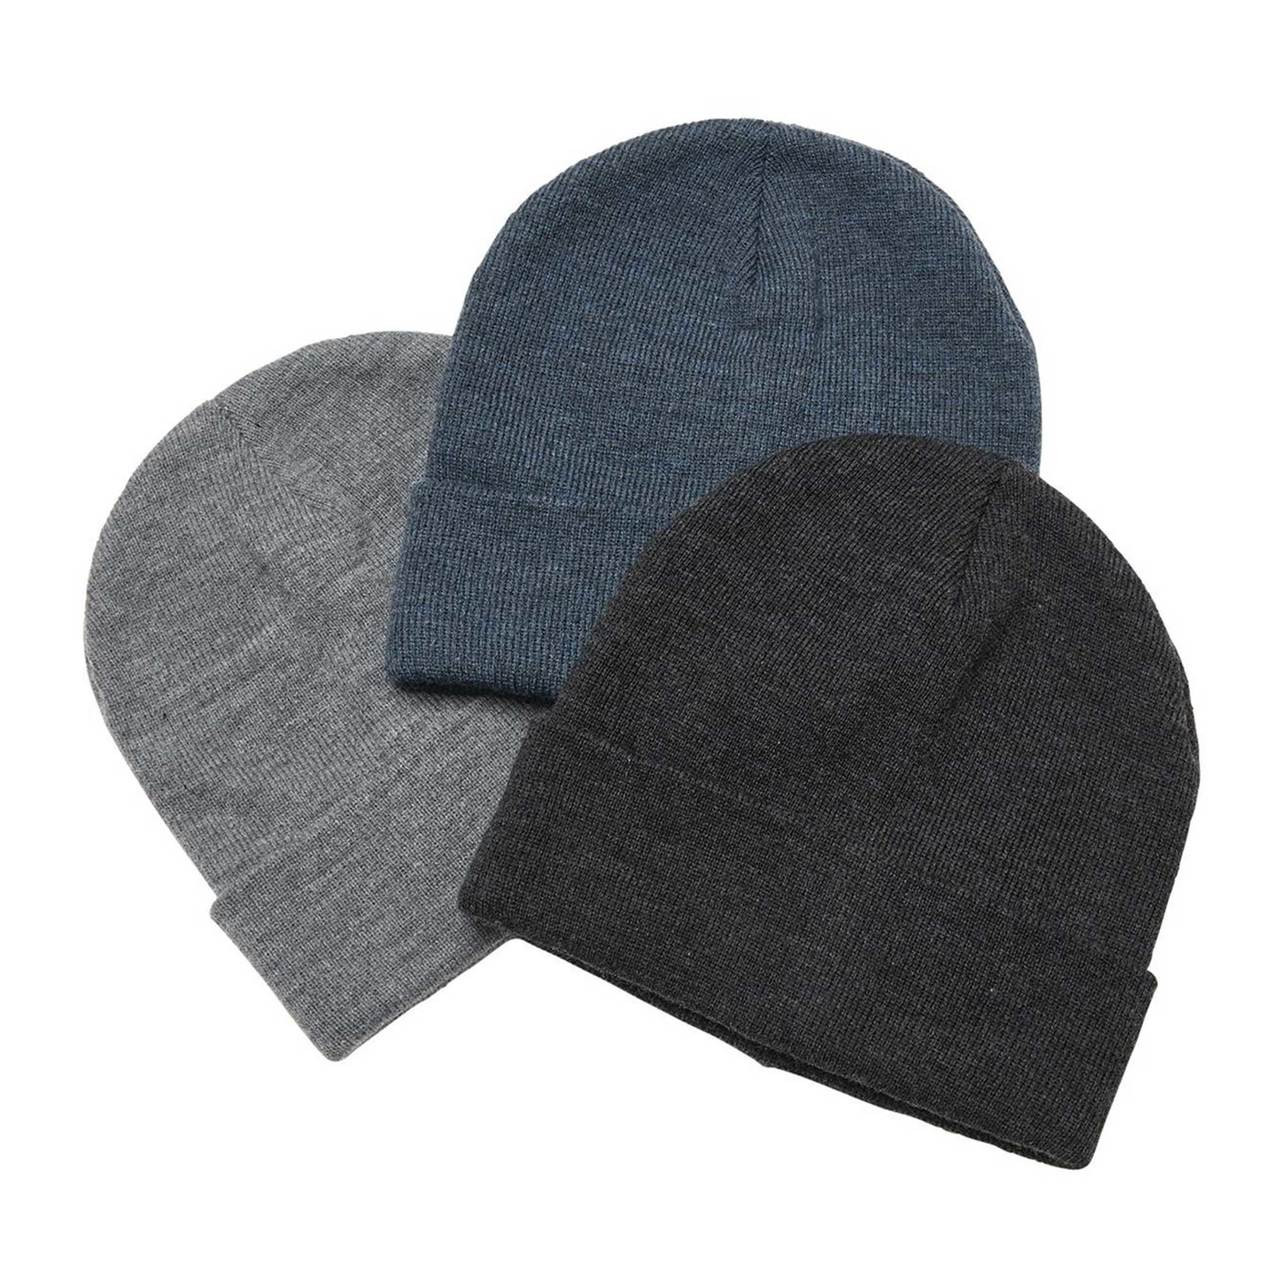 Plain Heather Knit Beanie with Roll Up Cuff  a0b0c6c1214